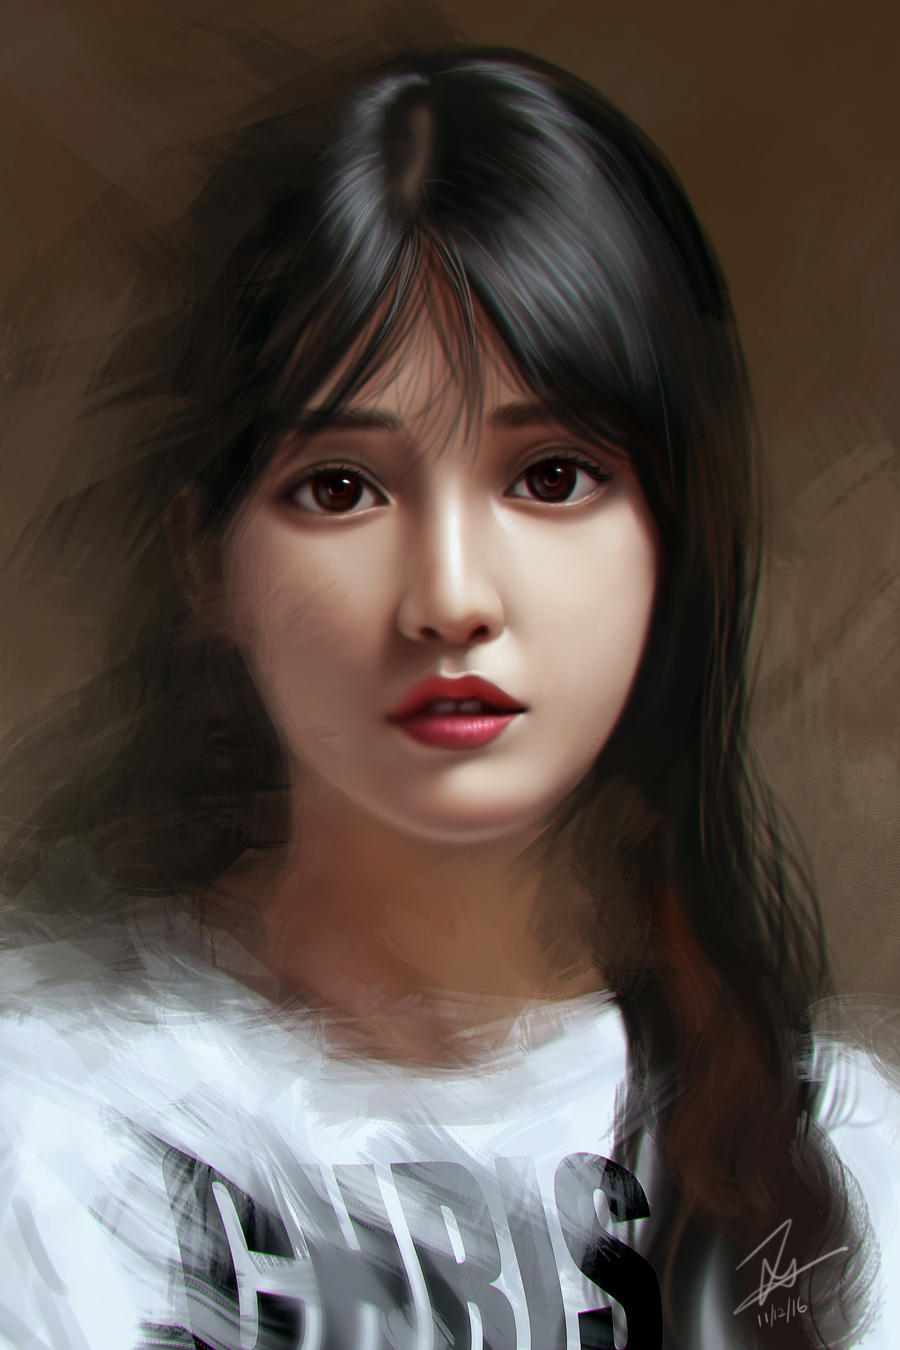 Portrait study by Zamberz